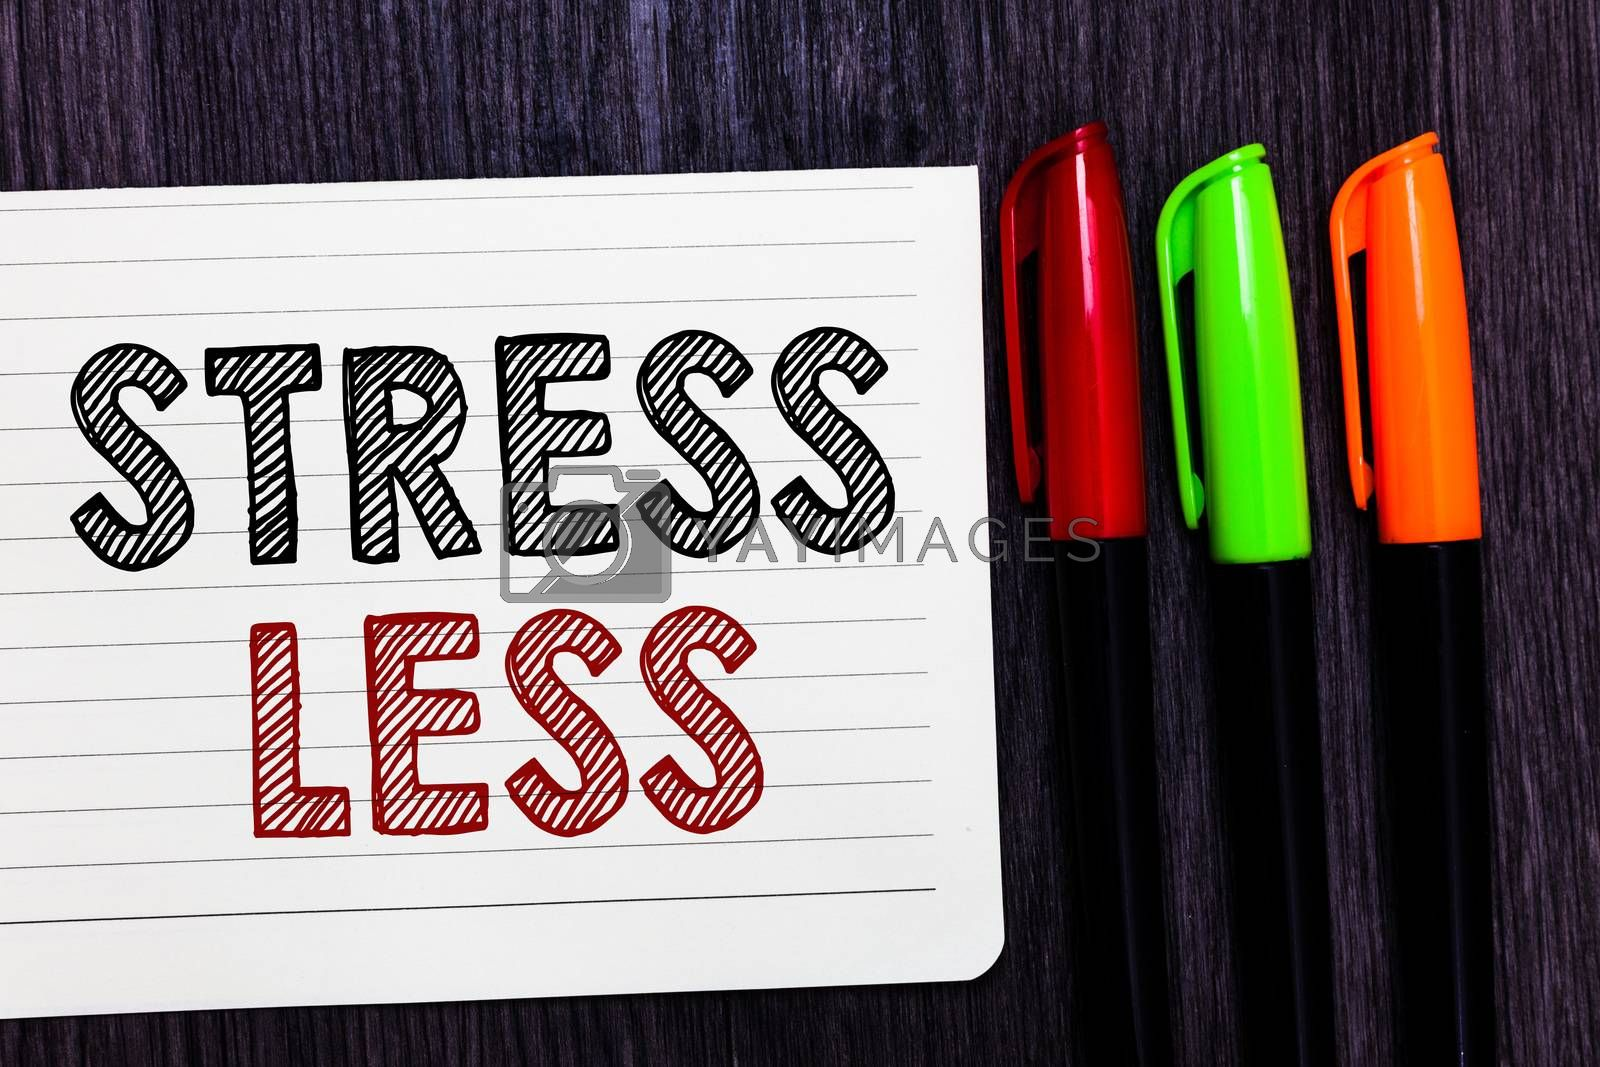 Word writing text Stress Less. Business concept for Stay away from problems Go out Unwind Meditate Indulge Oneself Notebook paper colorful markers wooden background communicating ideas. by Artur Szczybylo